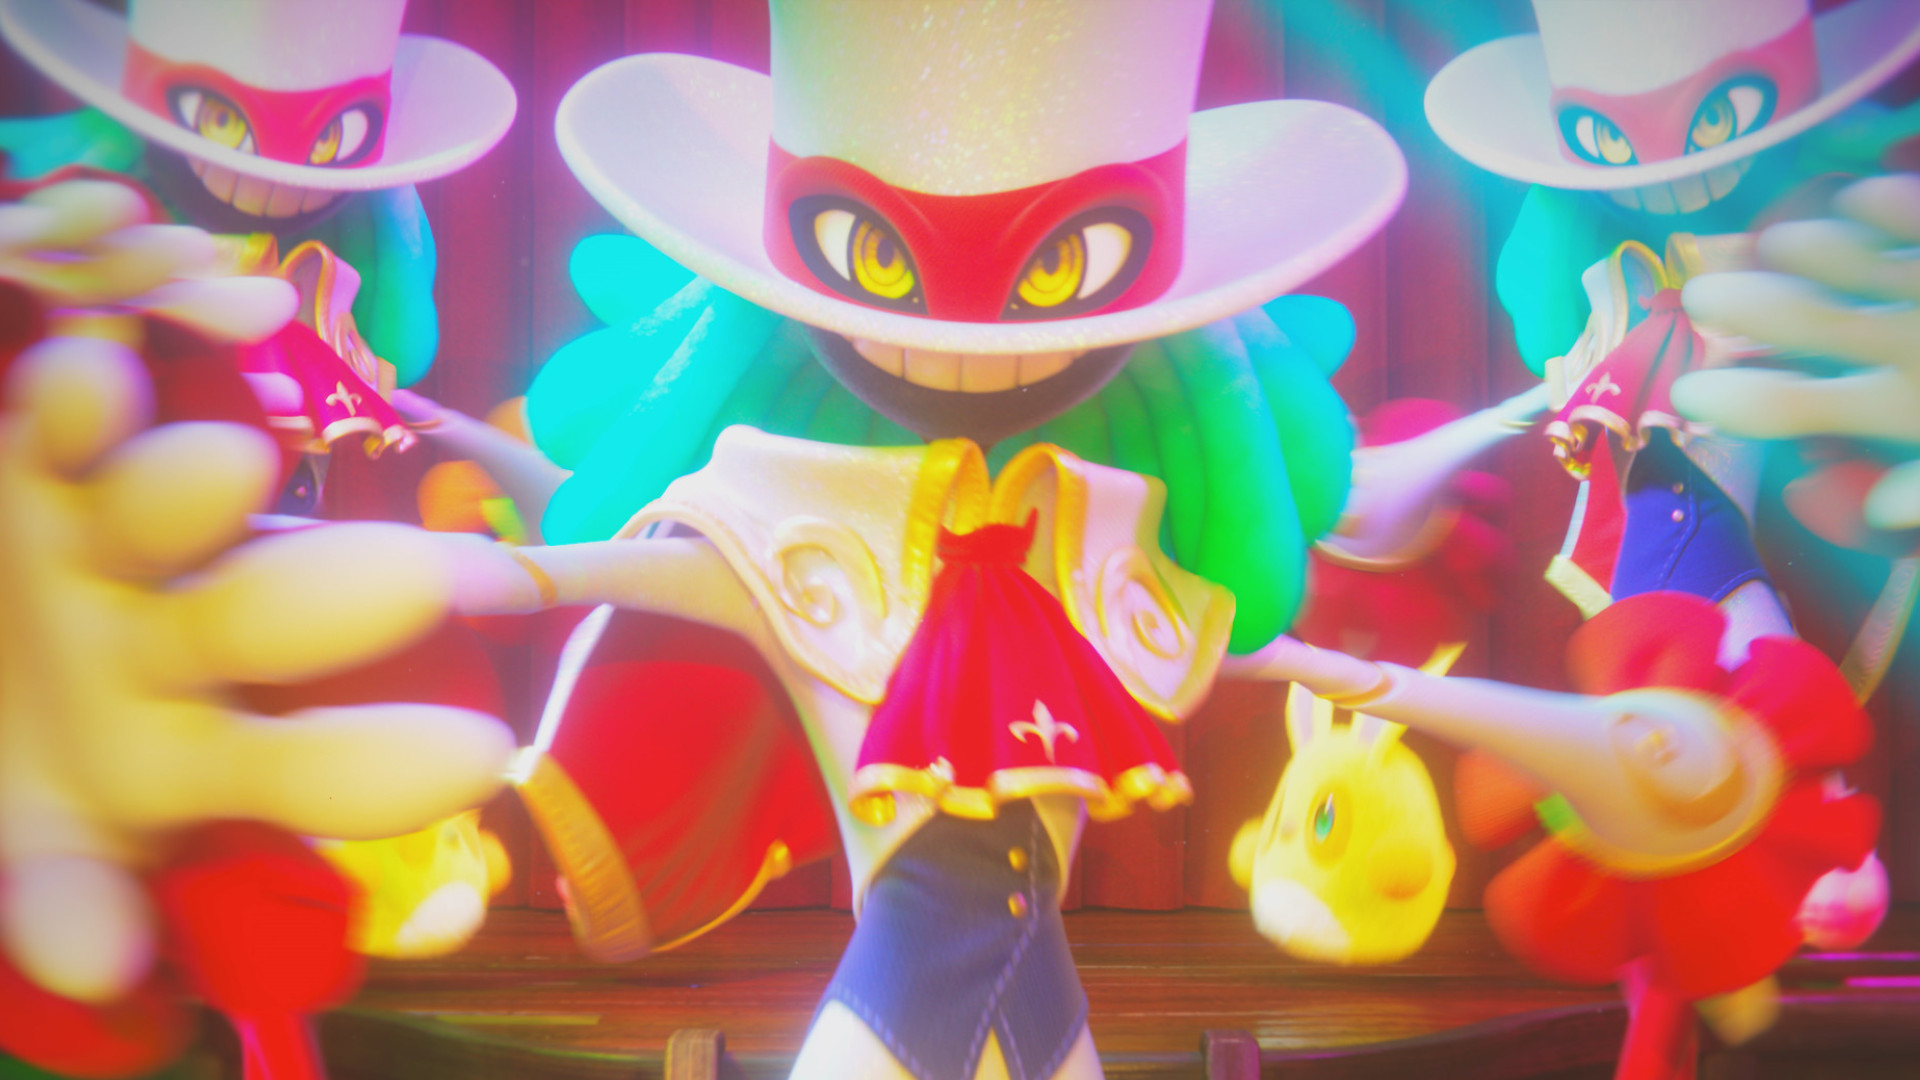 The new platformer from Sonic the Hedgehog creators gets a free Steam demo next week